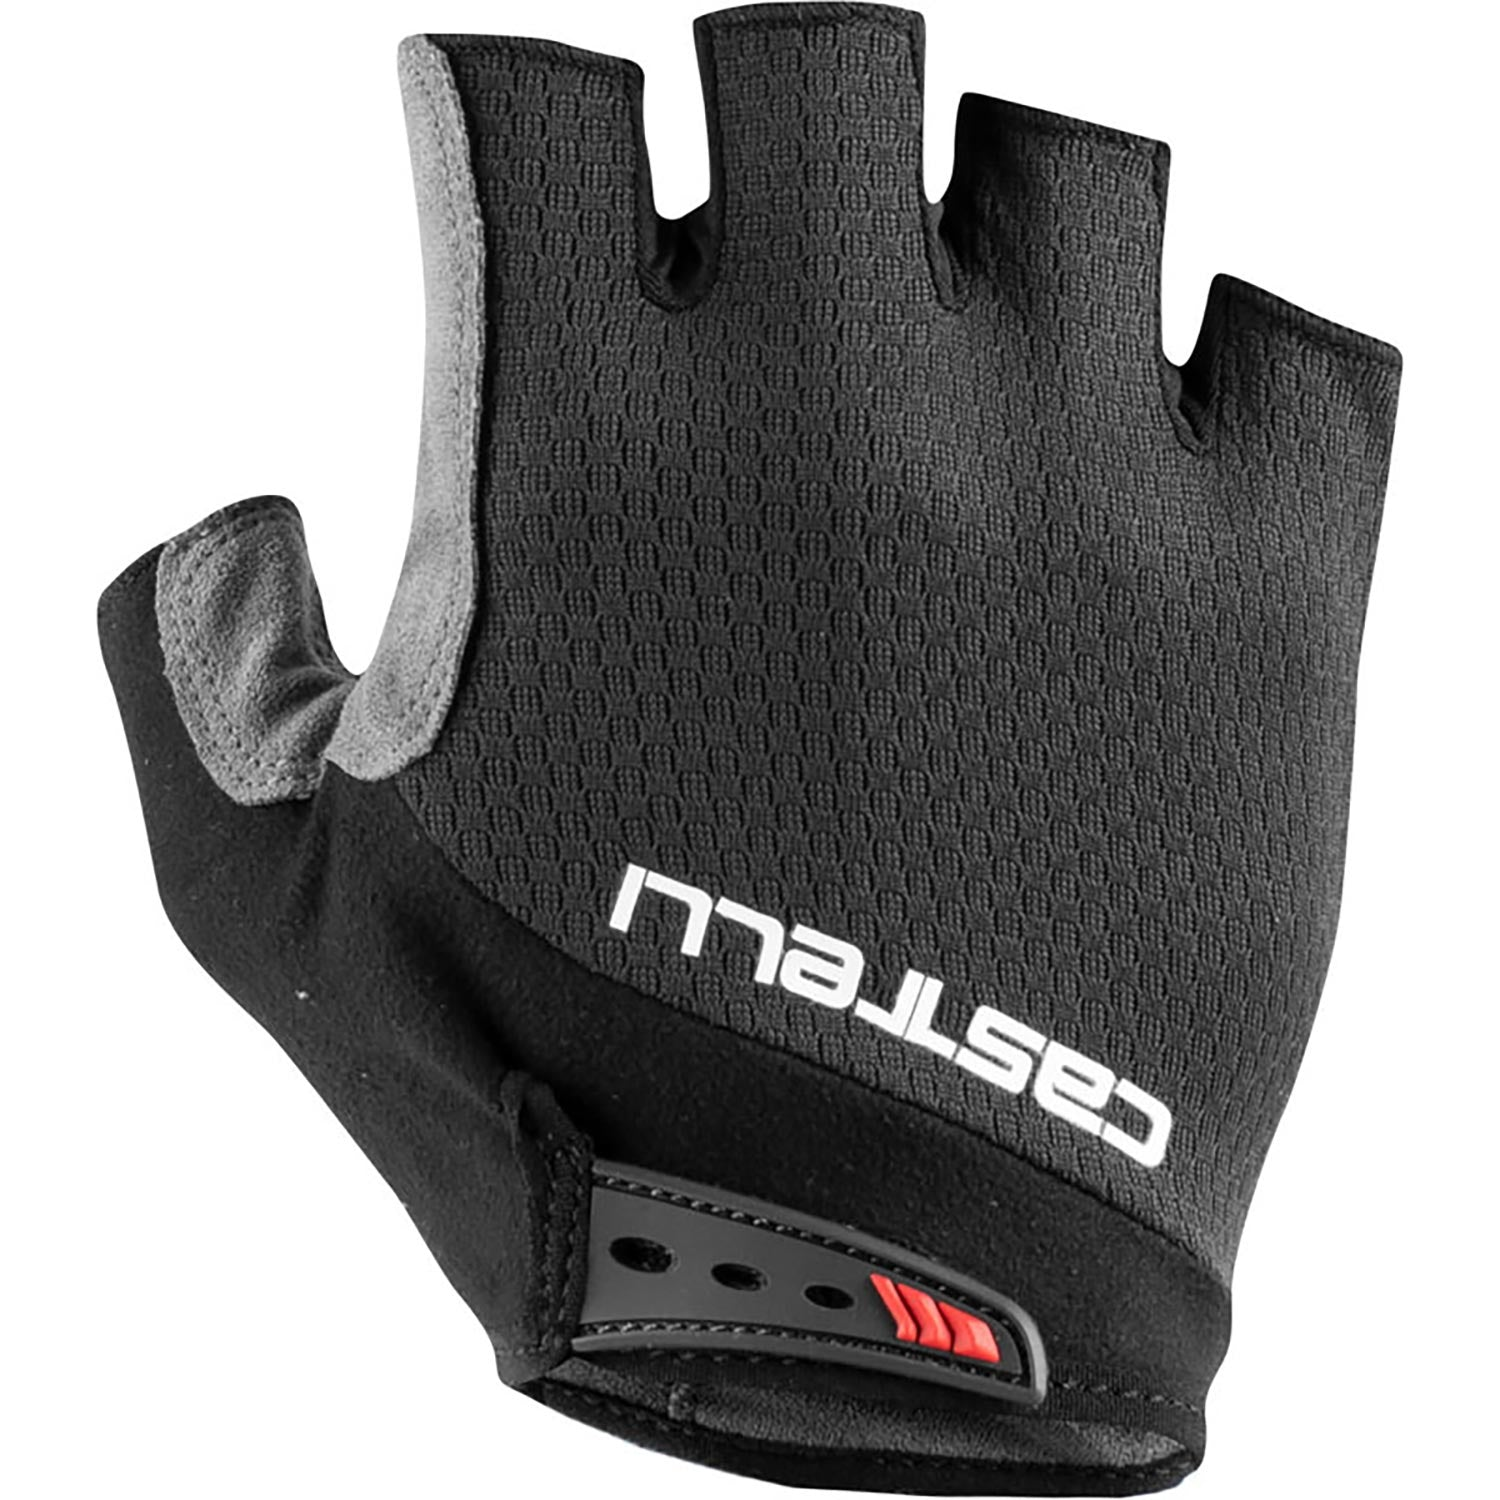 Castelli-Castelli Entrata V Gloves-Light Black-XS-CS210750851-saddleback-elite-performance-cycling